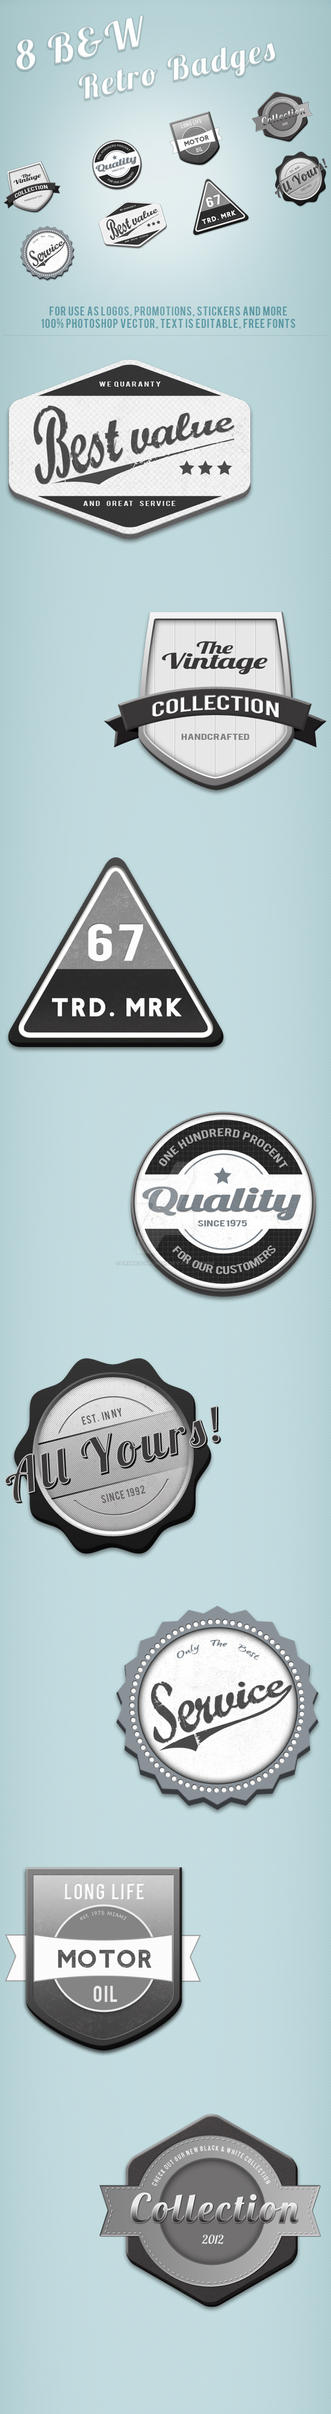 Black and White Retro Web Badges by frankschrijvers